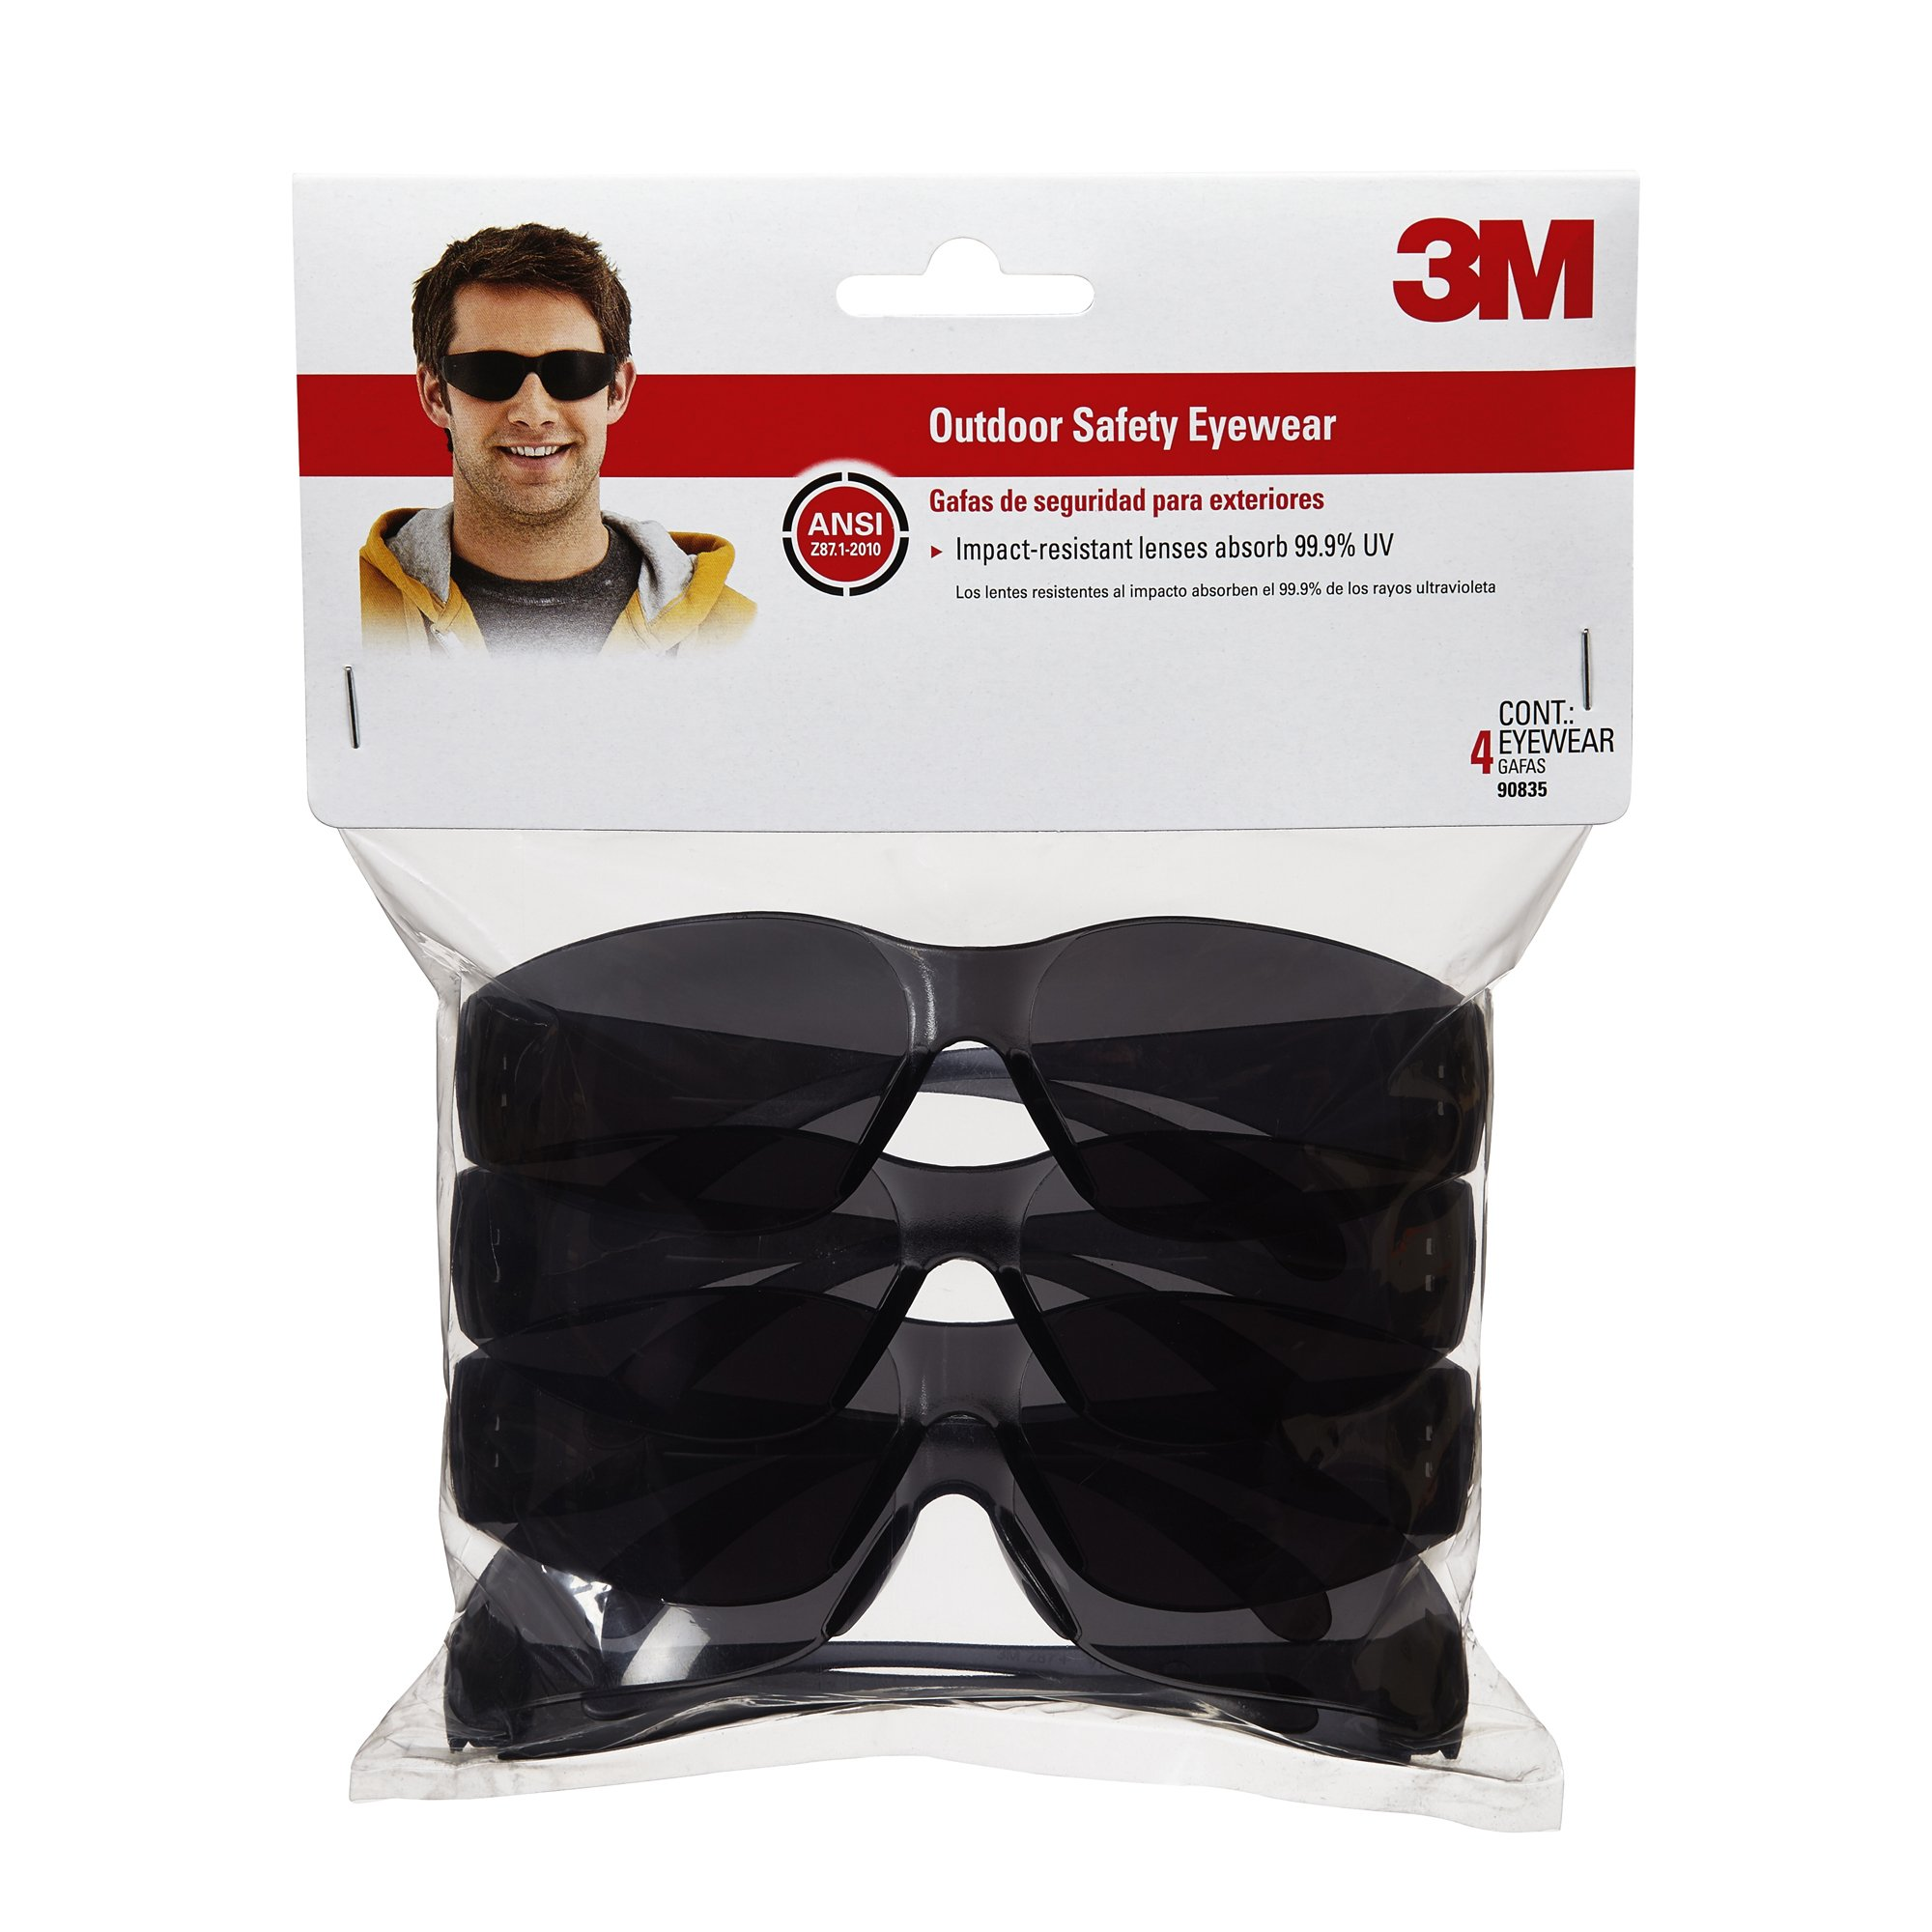 3M 90835 Outdoor Safety Eyewear, Black Frame, Gray Scratch Resistant Lenses (4 Pack) by 3M (Image #1)